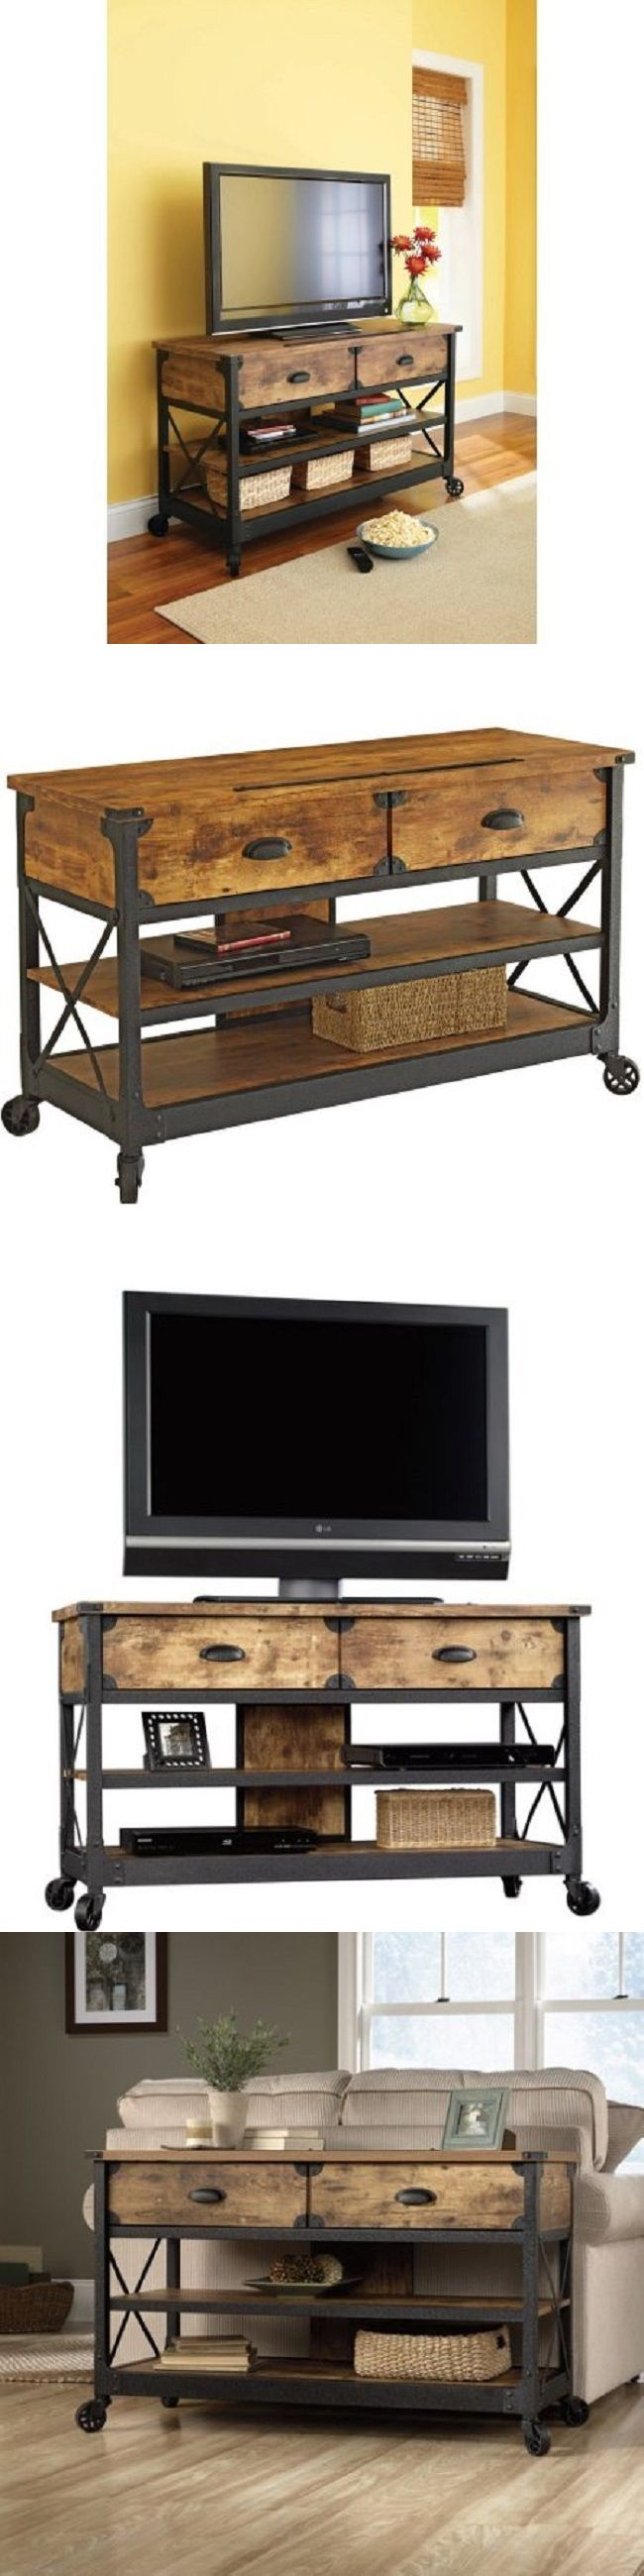 Best 25 Metal tv stand ideas on Pinterest Industrial tv stand